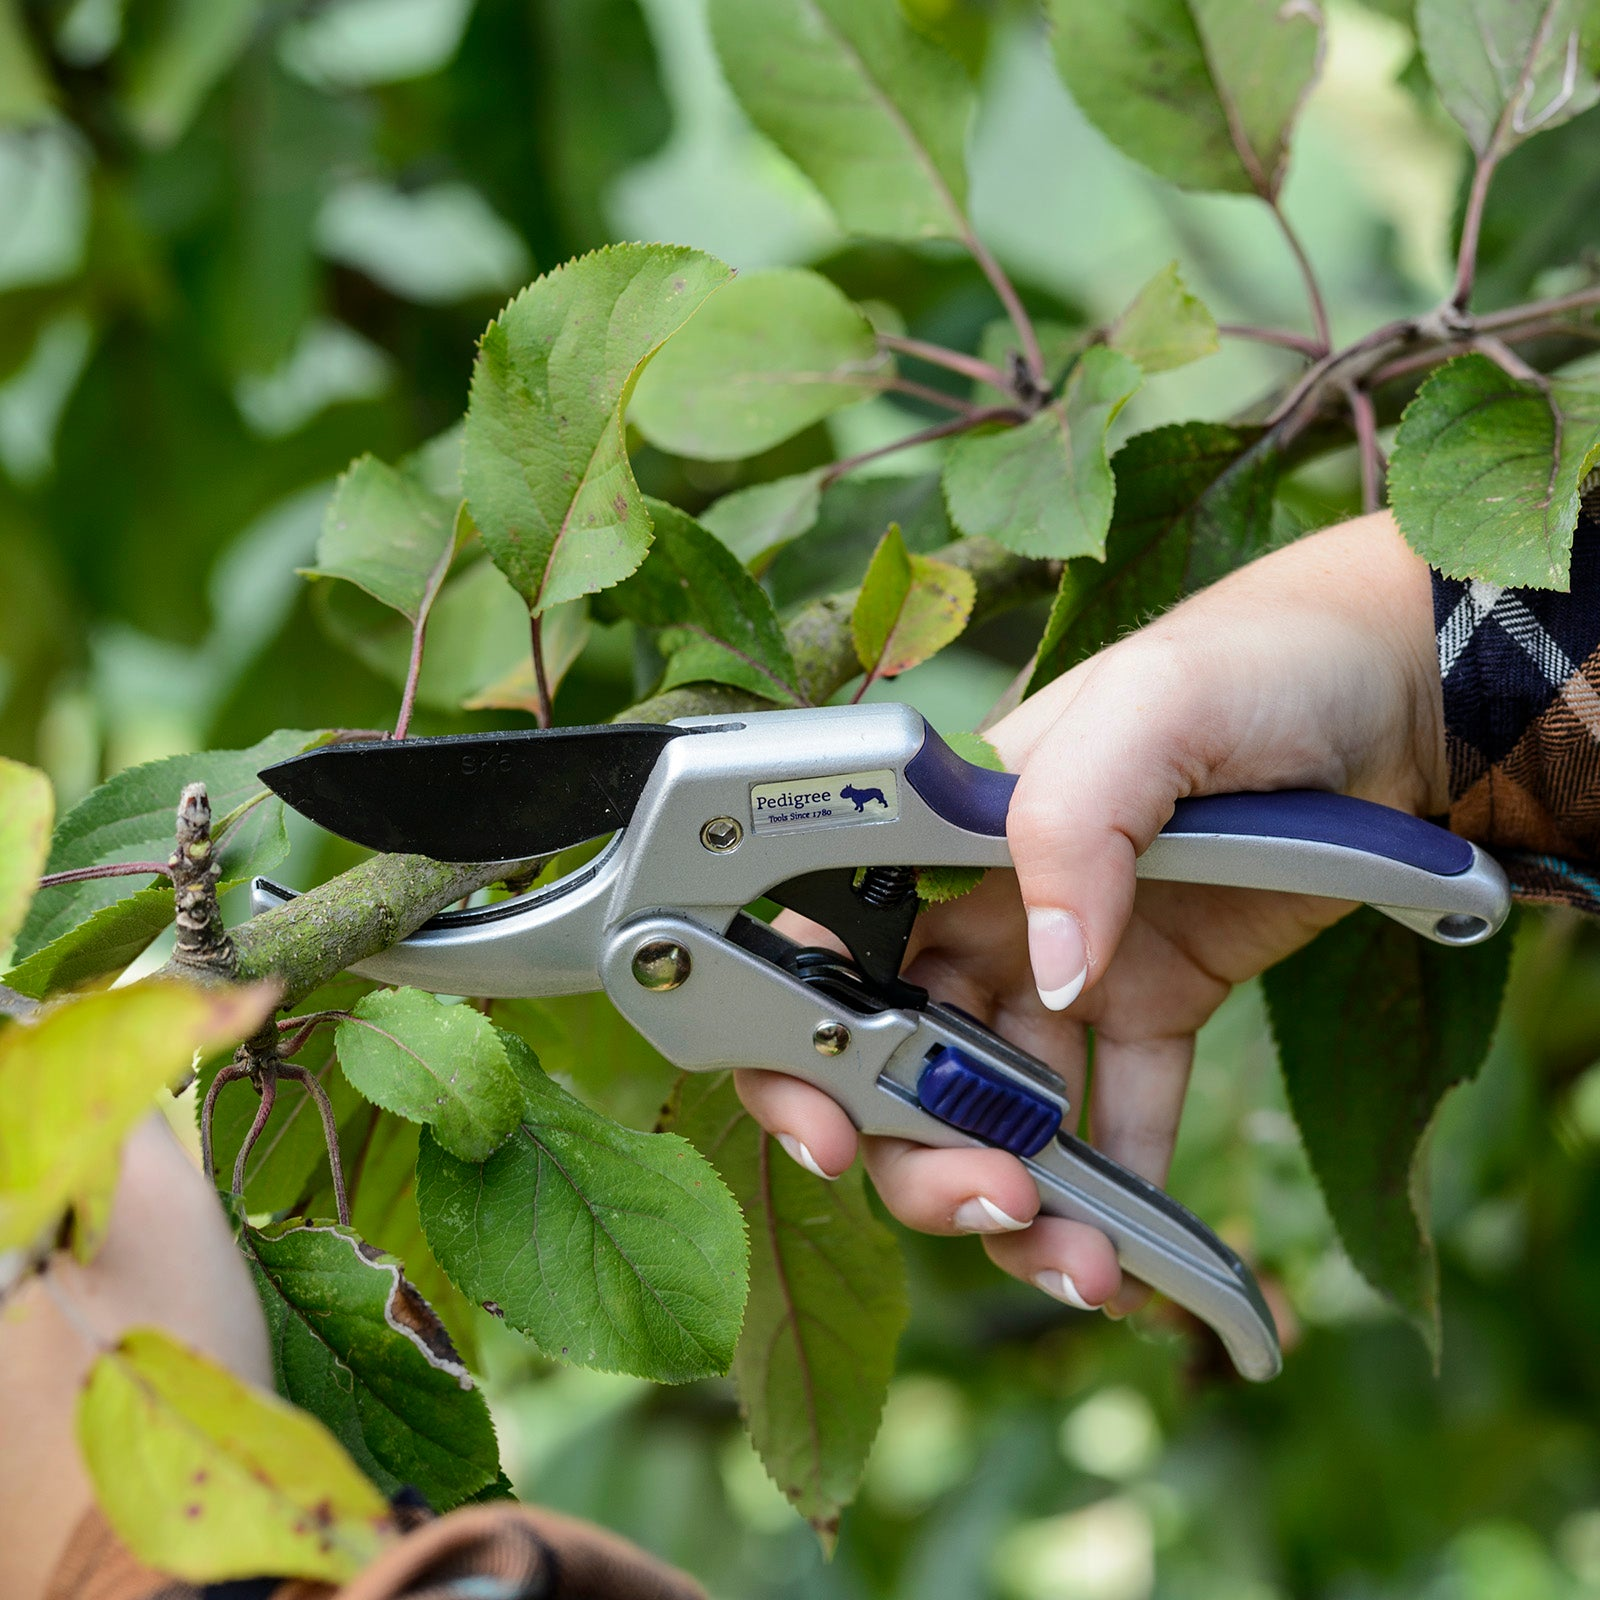 Power Ratchet Pruner